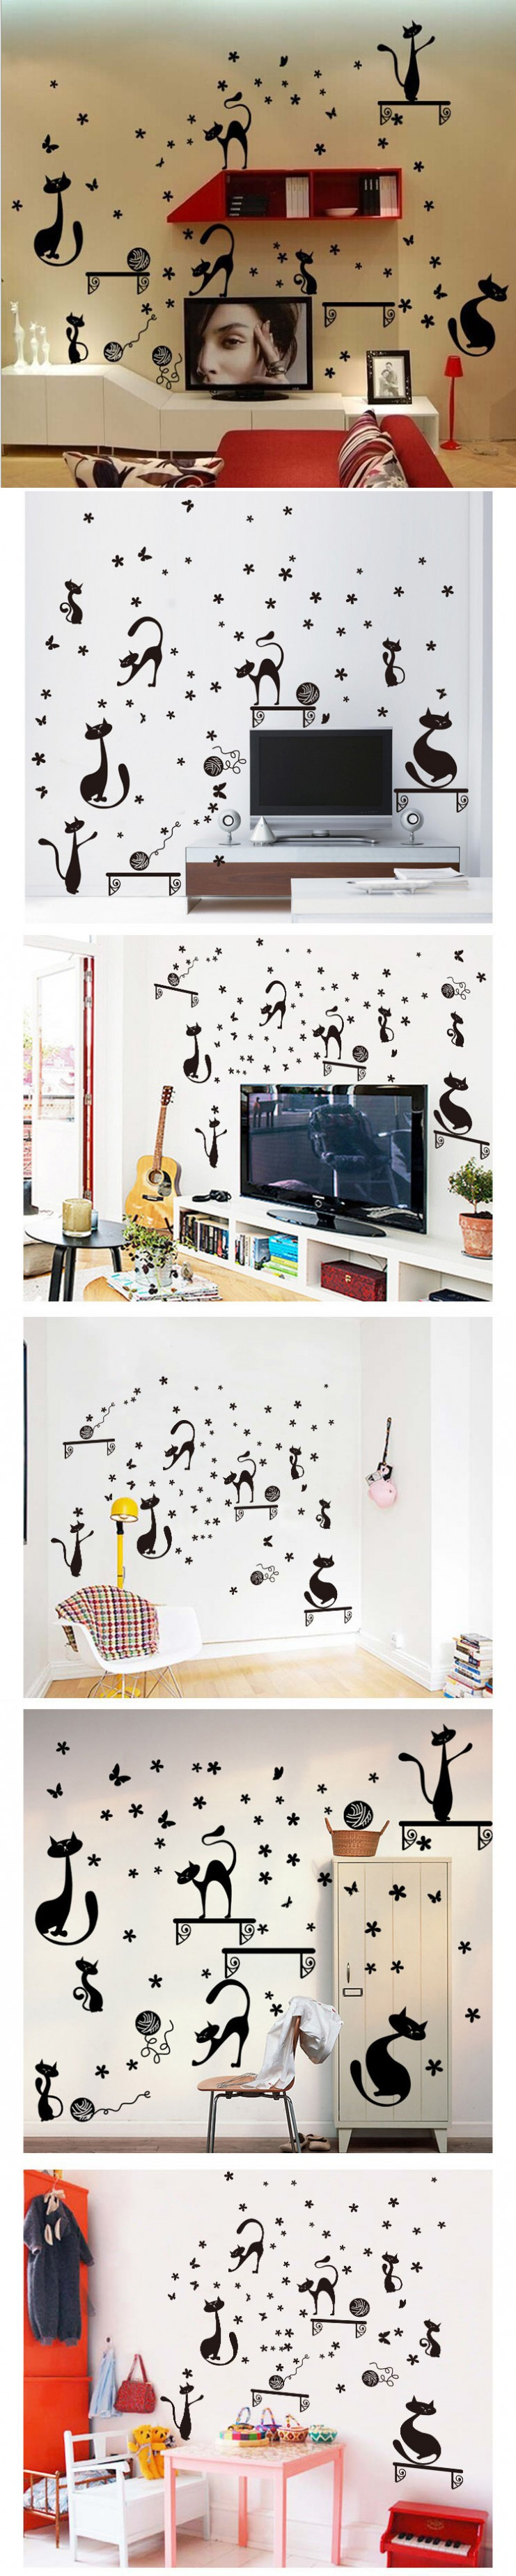 cartoon cute black cat wall stickers for kids rooms decor decals art ...